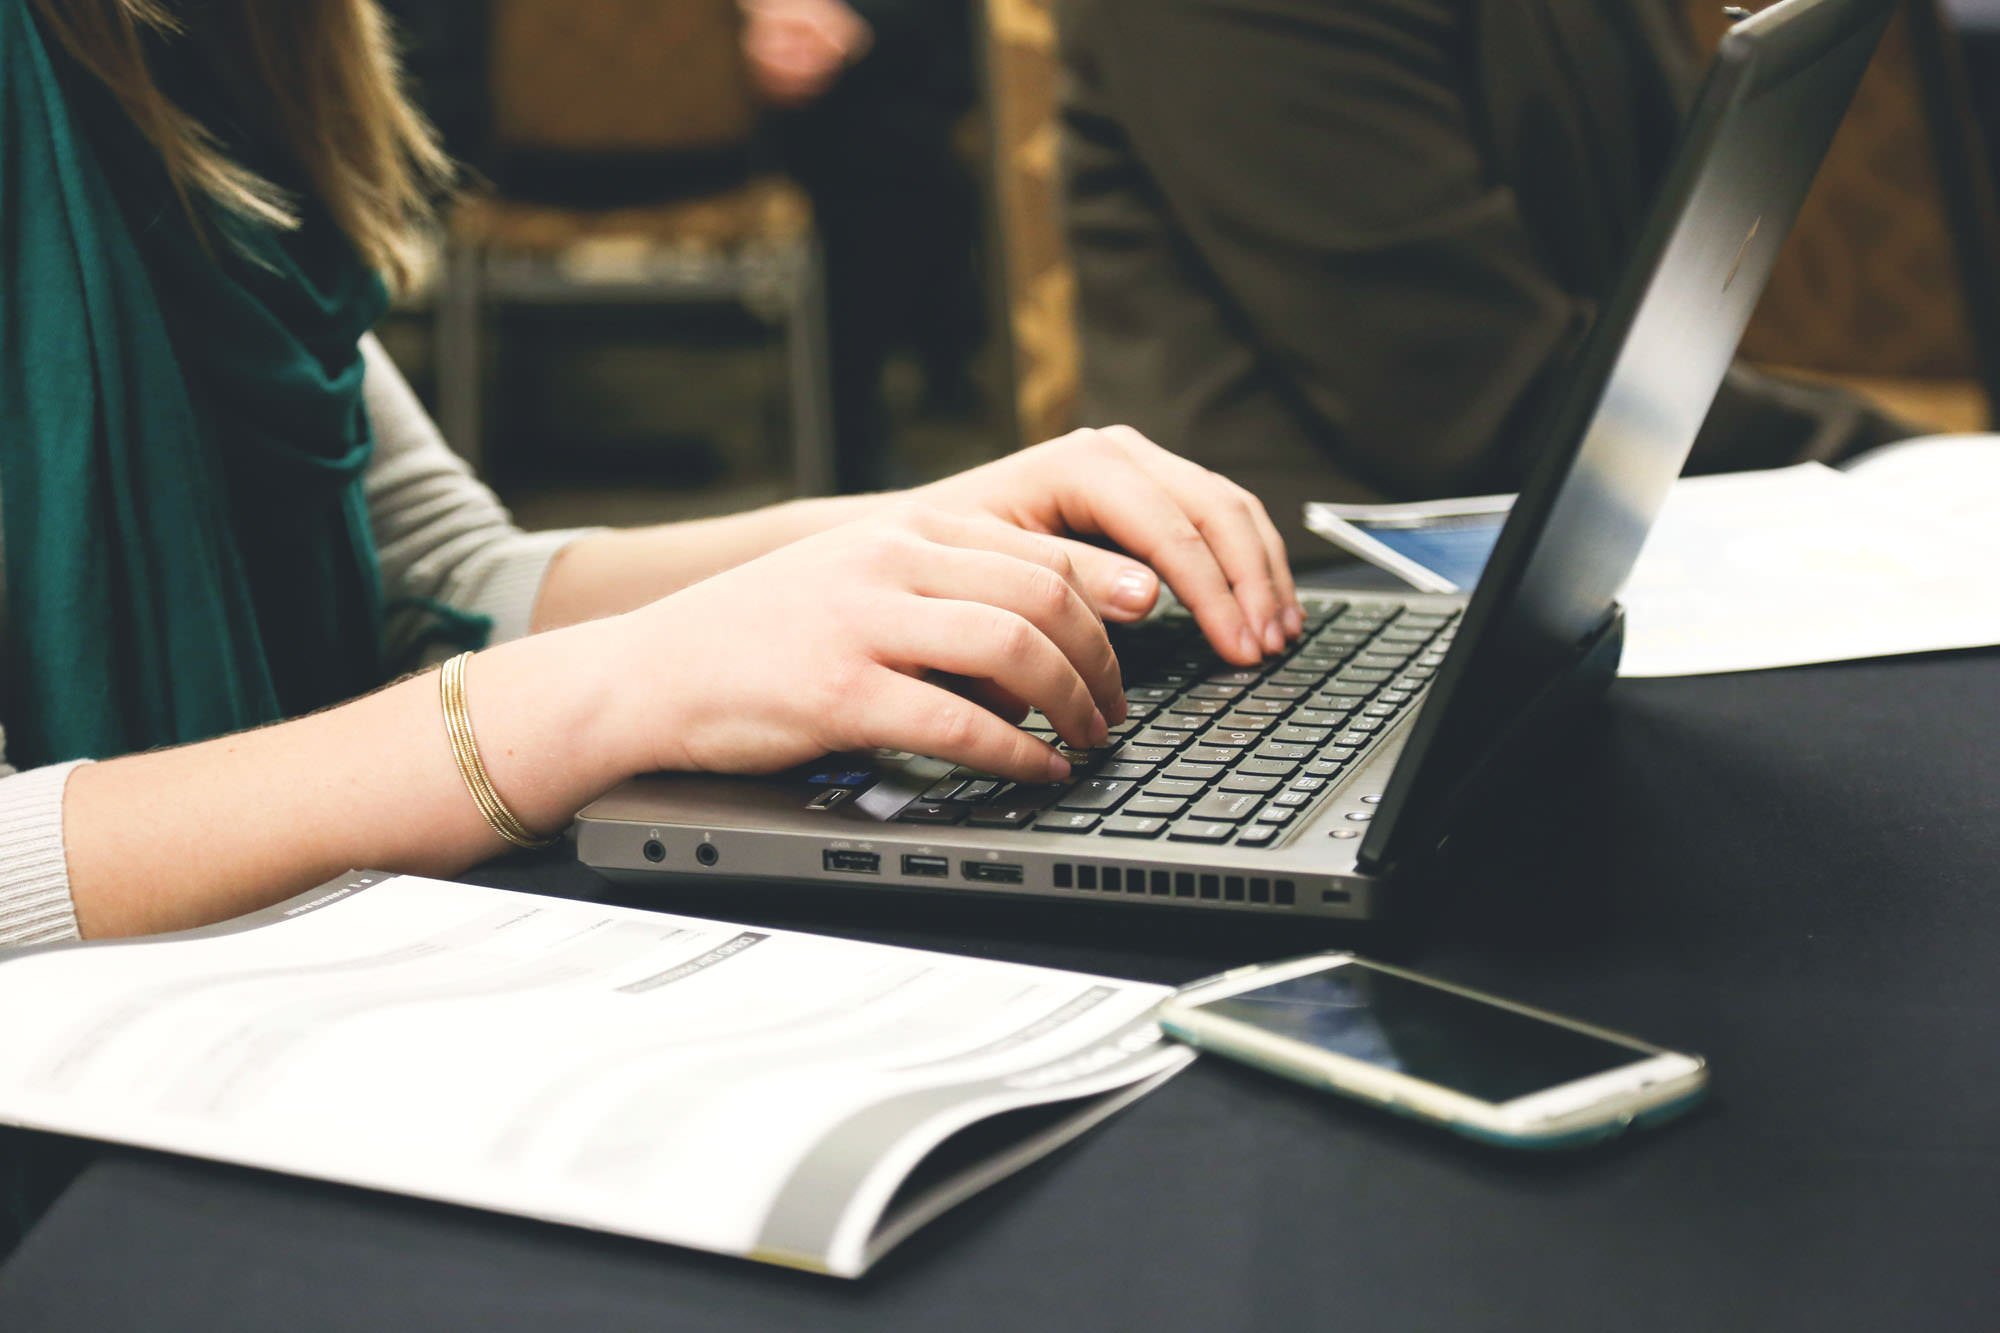 4 tips for writing a compelling cover letter - Cooperative Education